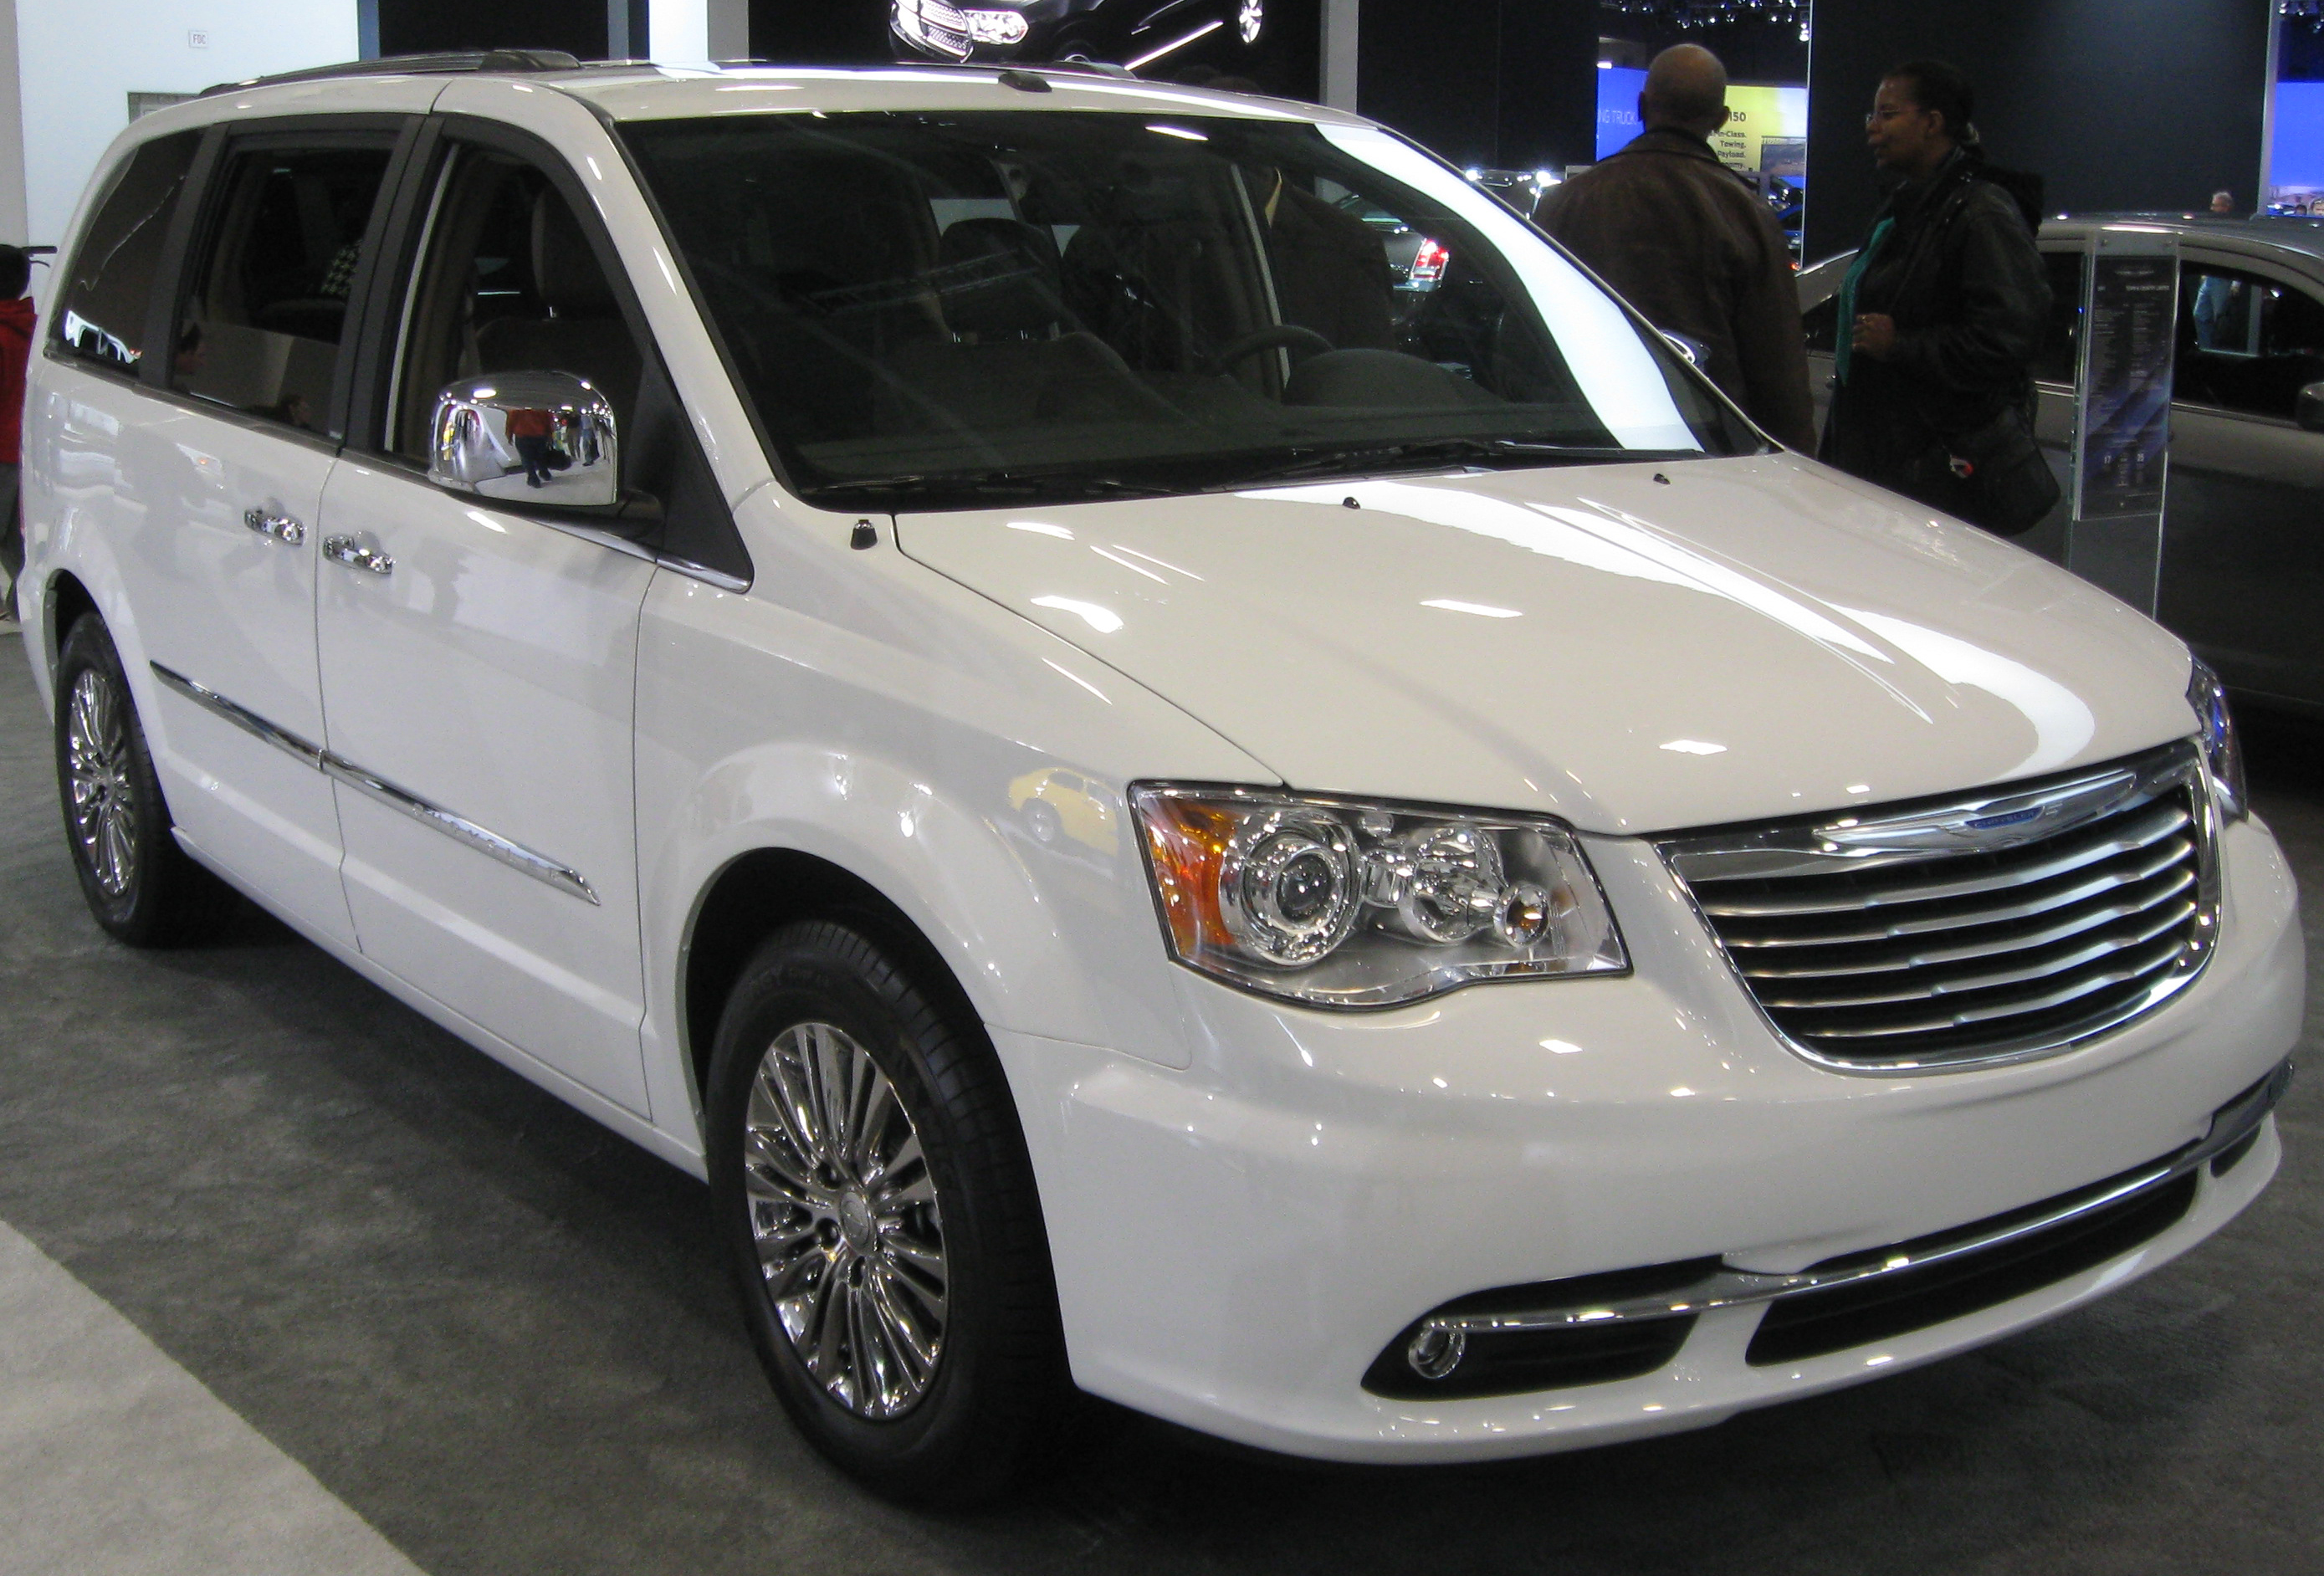 file 2011 chrysler town and country limited 2011 wikimedia. Cars Review. Best American Auto & Cars Review